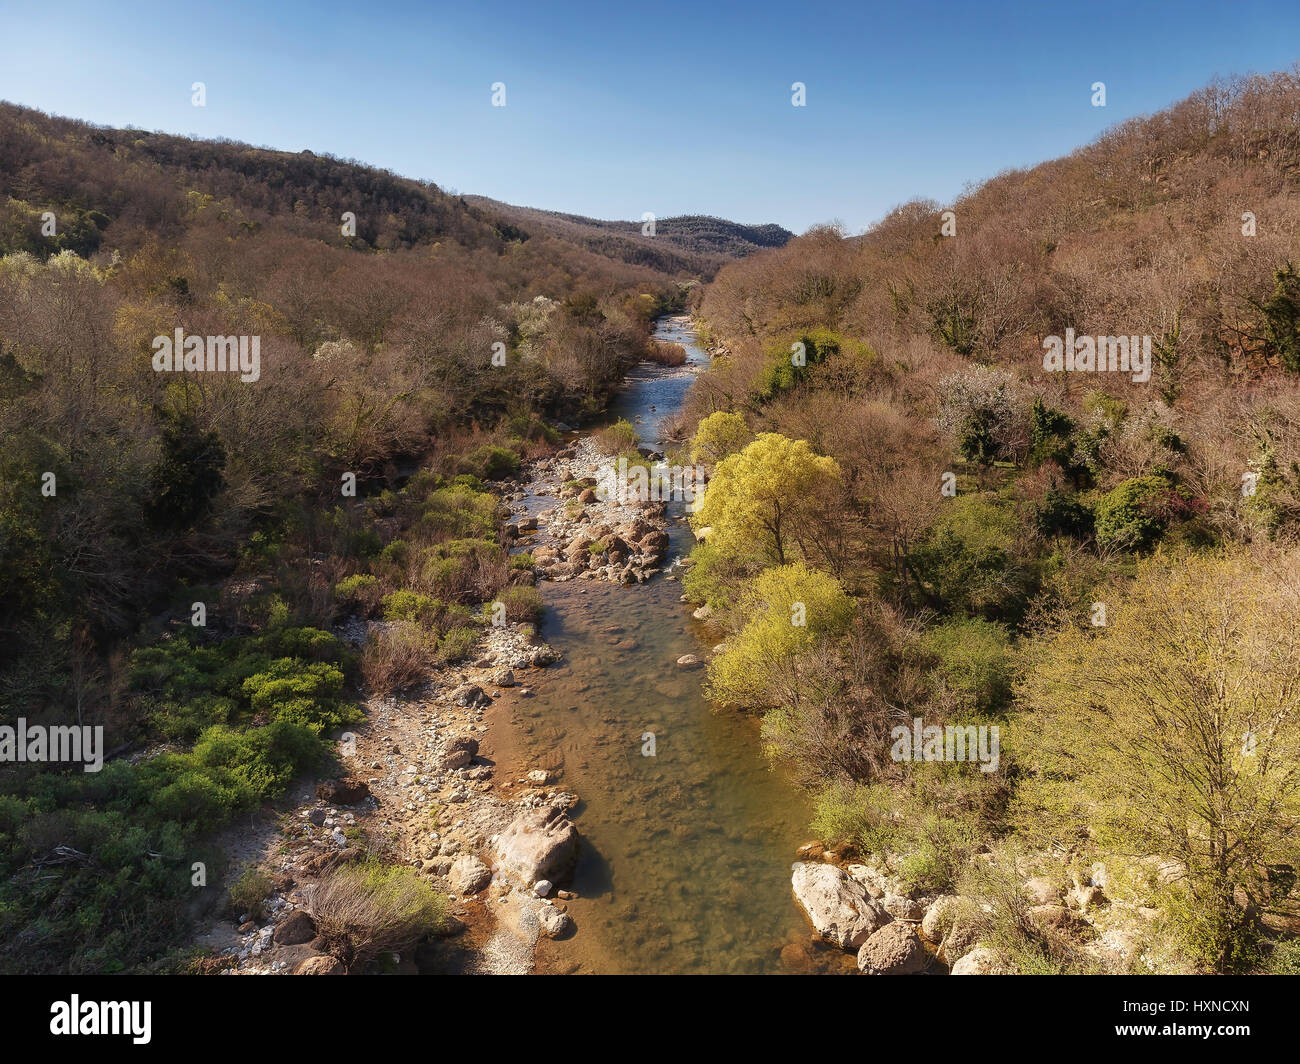 Small river on rocky ground, makes its way through the vegetation at the foot of the hill - Stock Image